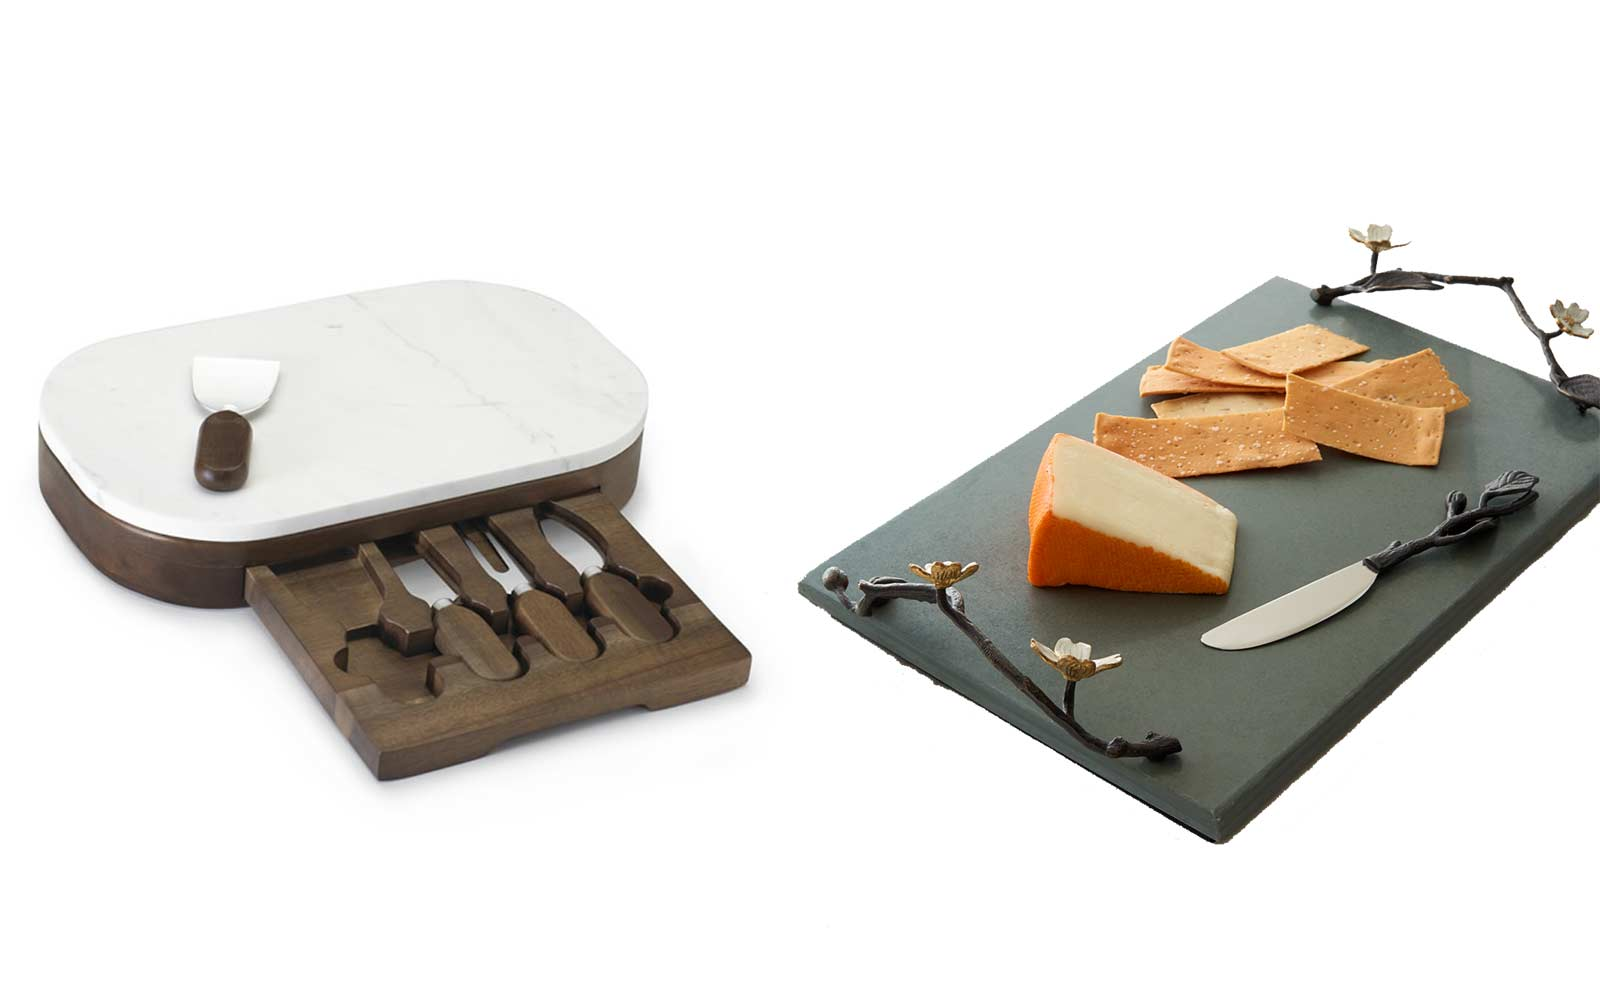 A Cheeseboard and Knife Set